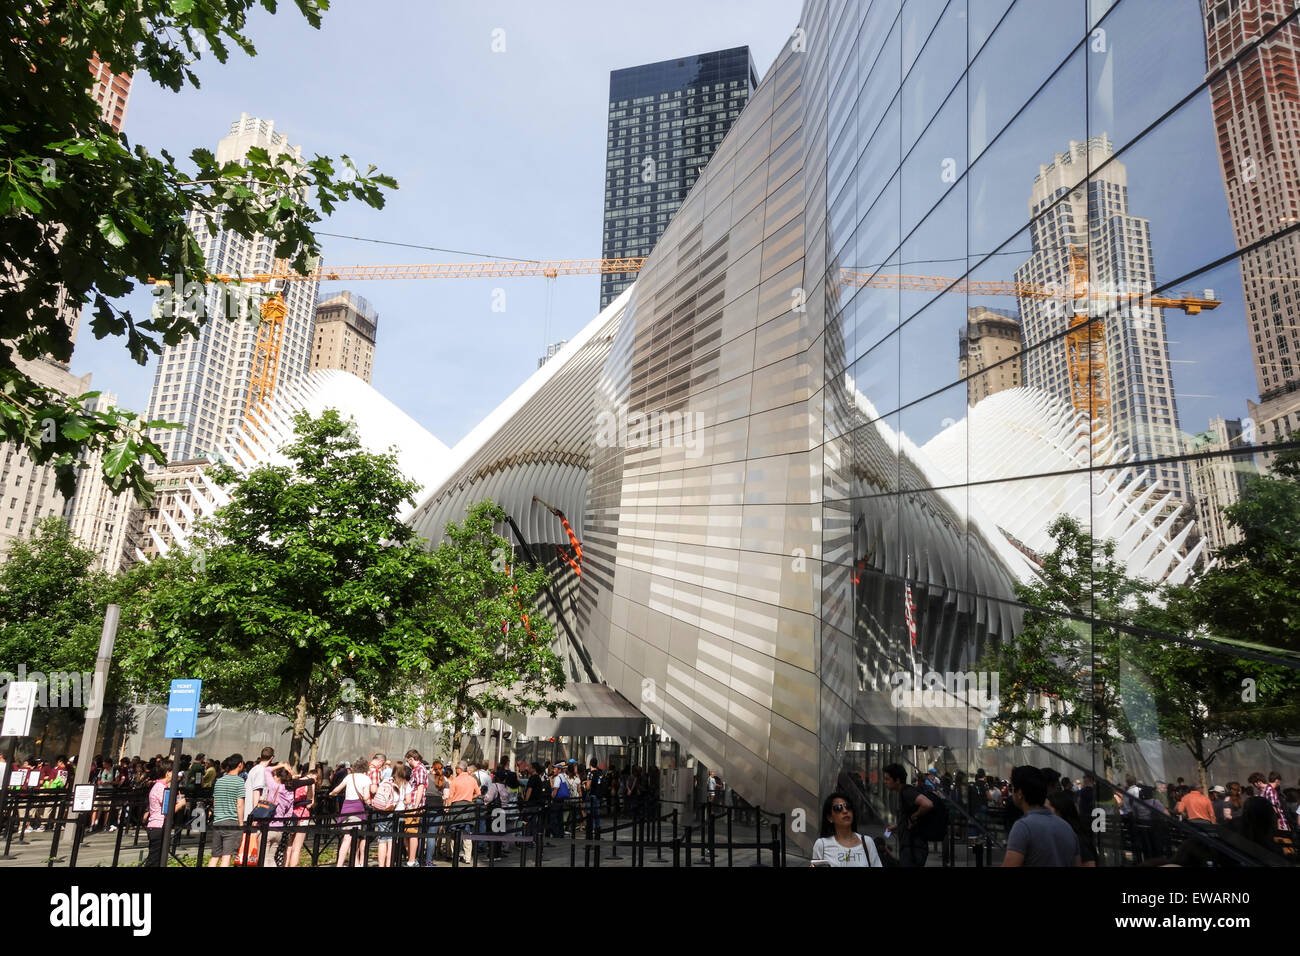 Entrance of National September 11 Memorial & Museum, New york City, USA. Stock Photo